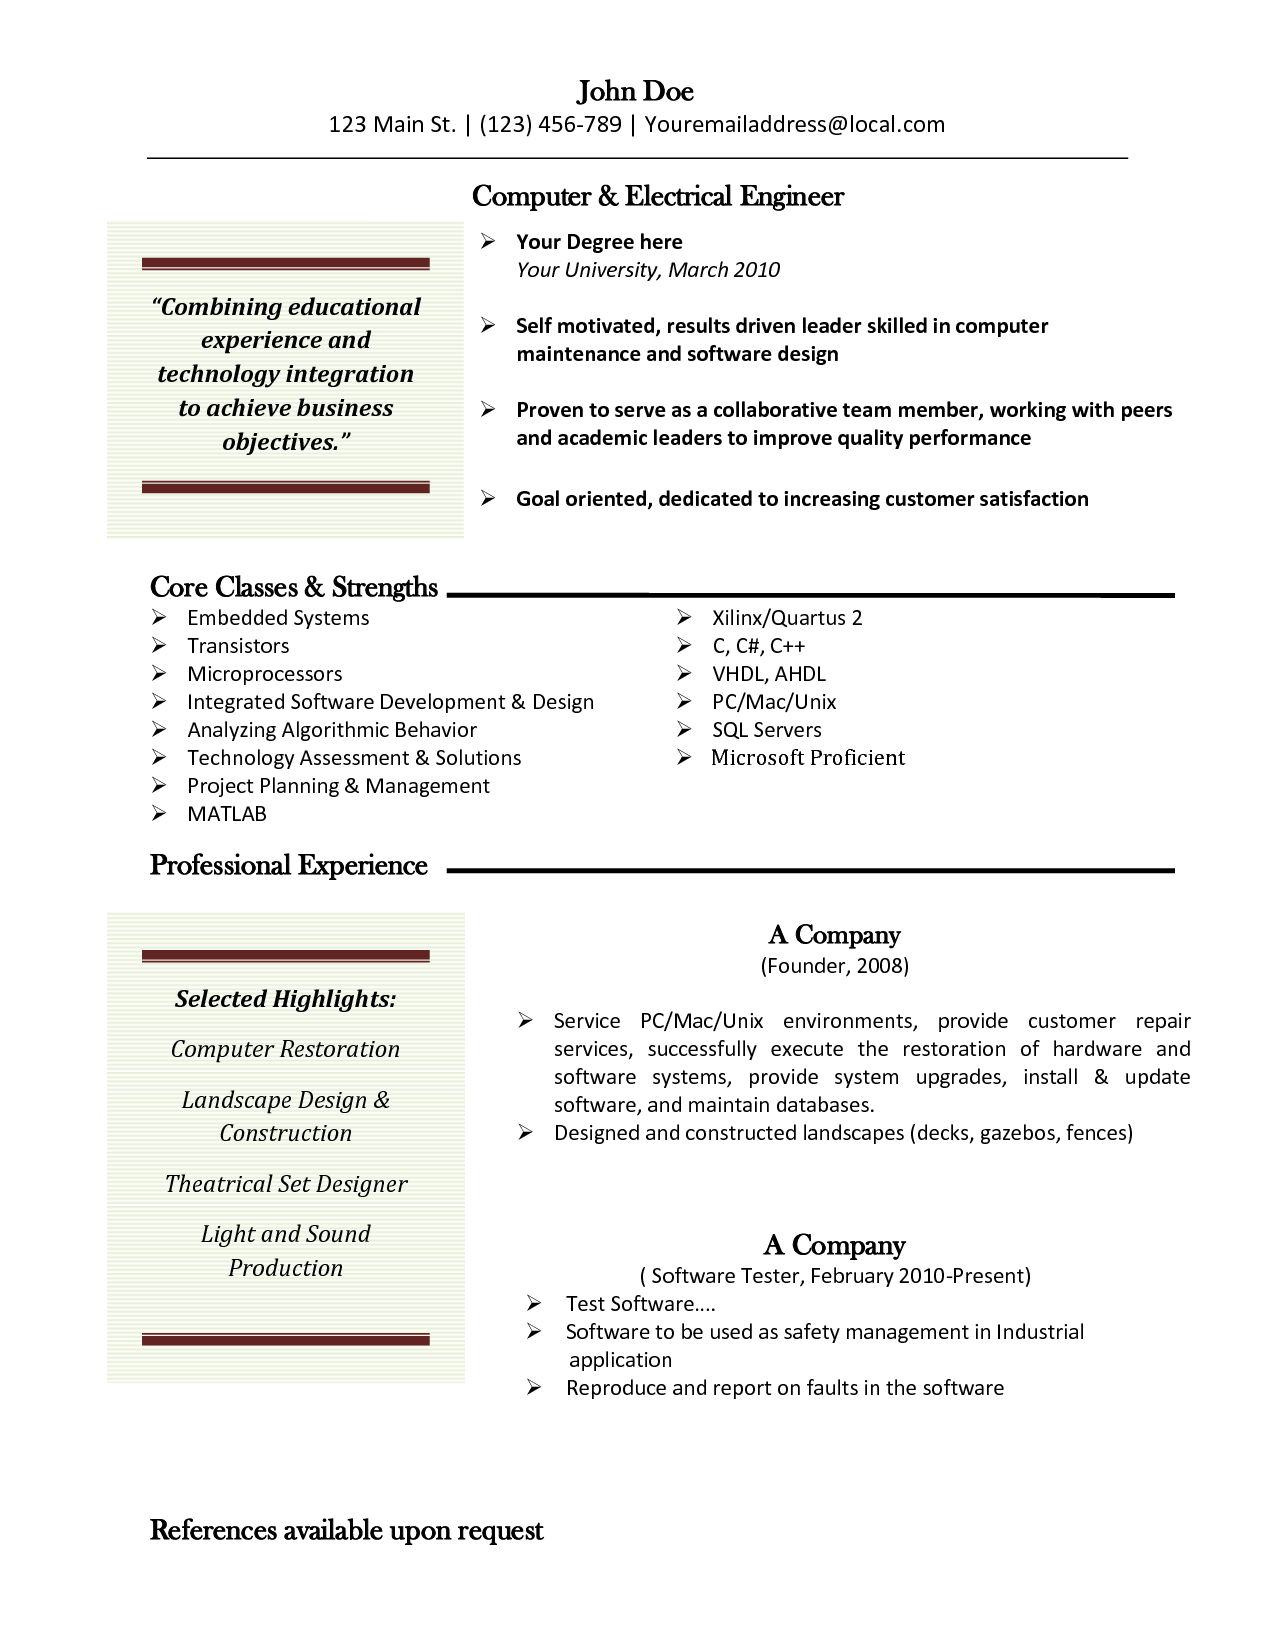 Microsoft Office Resume Templates Free Download Adorable Freeresumetemplatesformaccqjykibi 1275×1650  Cv